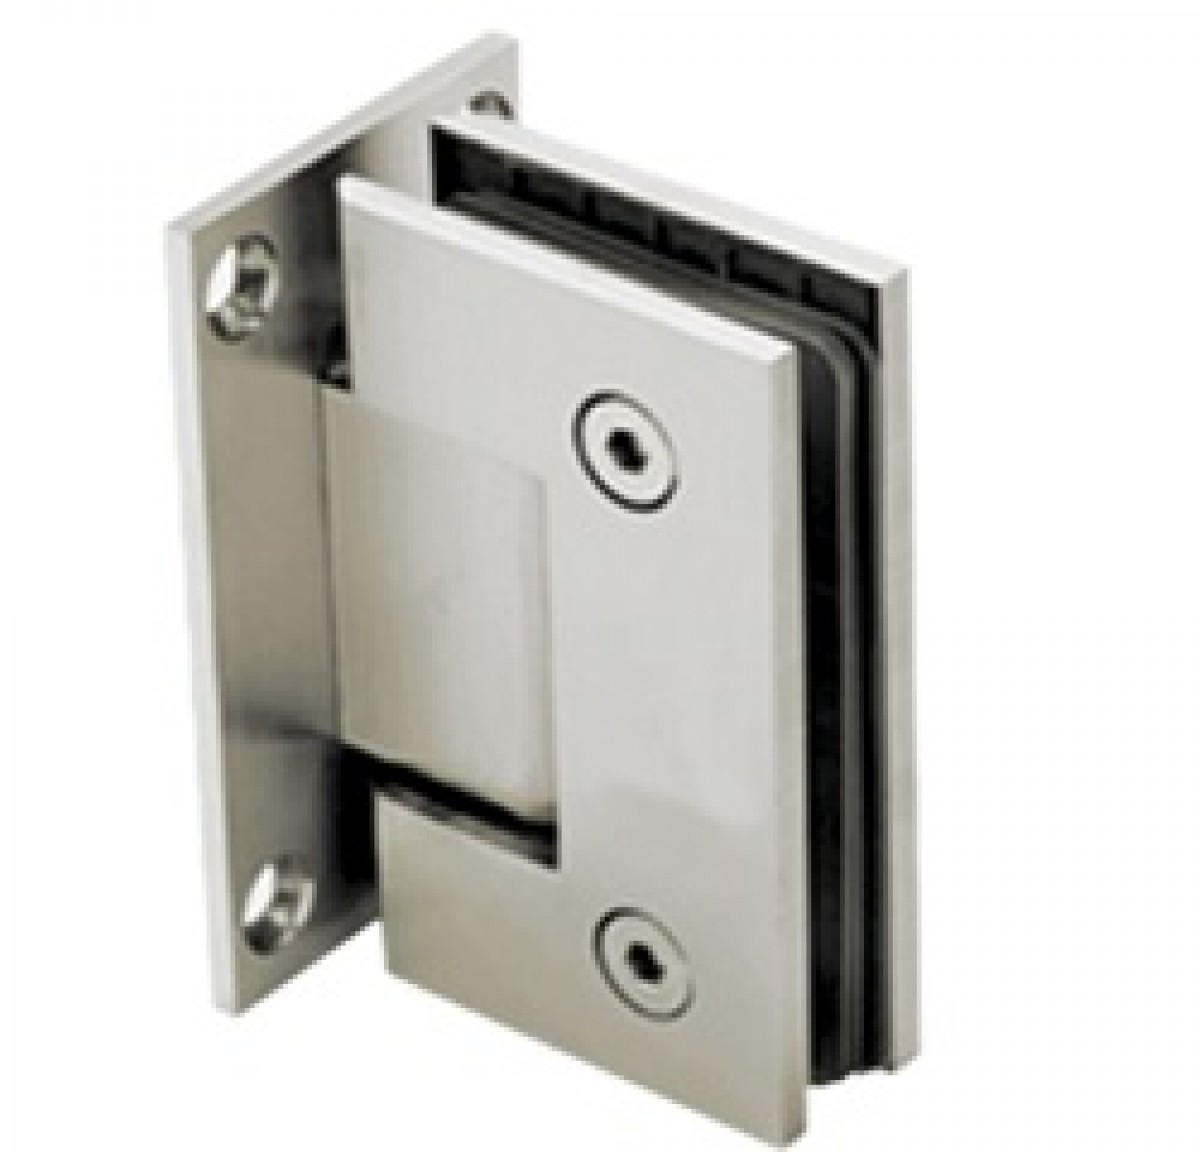 /ProductImg/info@divinehardware.com_Shower Hinges.jpg